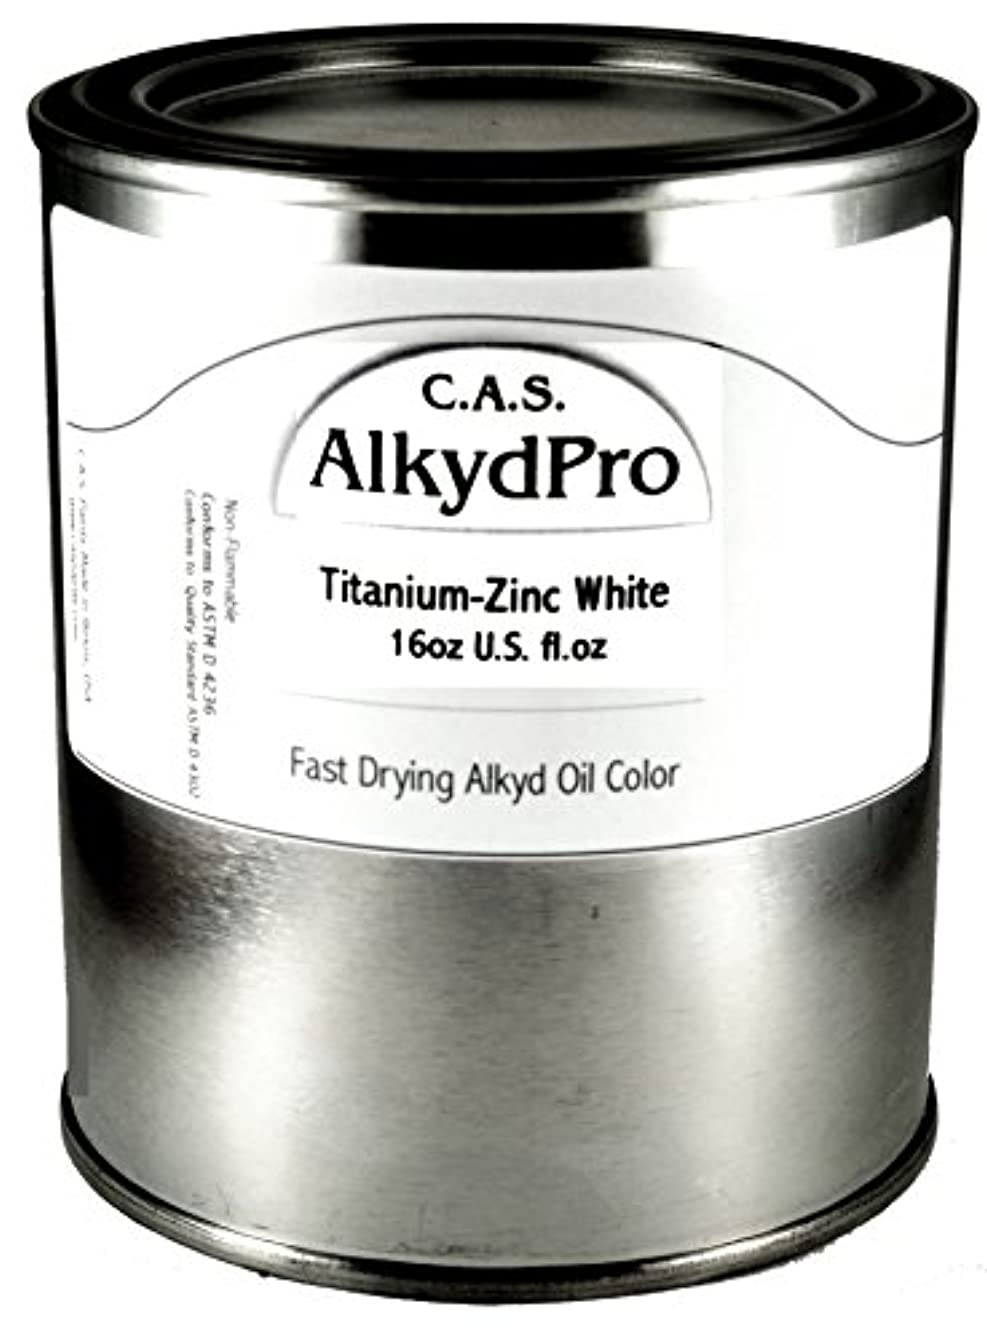 C.A.S. Paints AlkydPro Fast-Drying Oil Color Paint Can, 16-Ounce, Titanium-Zinc White